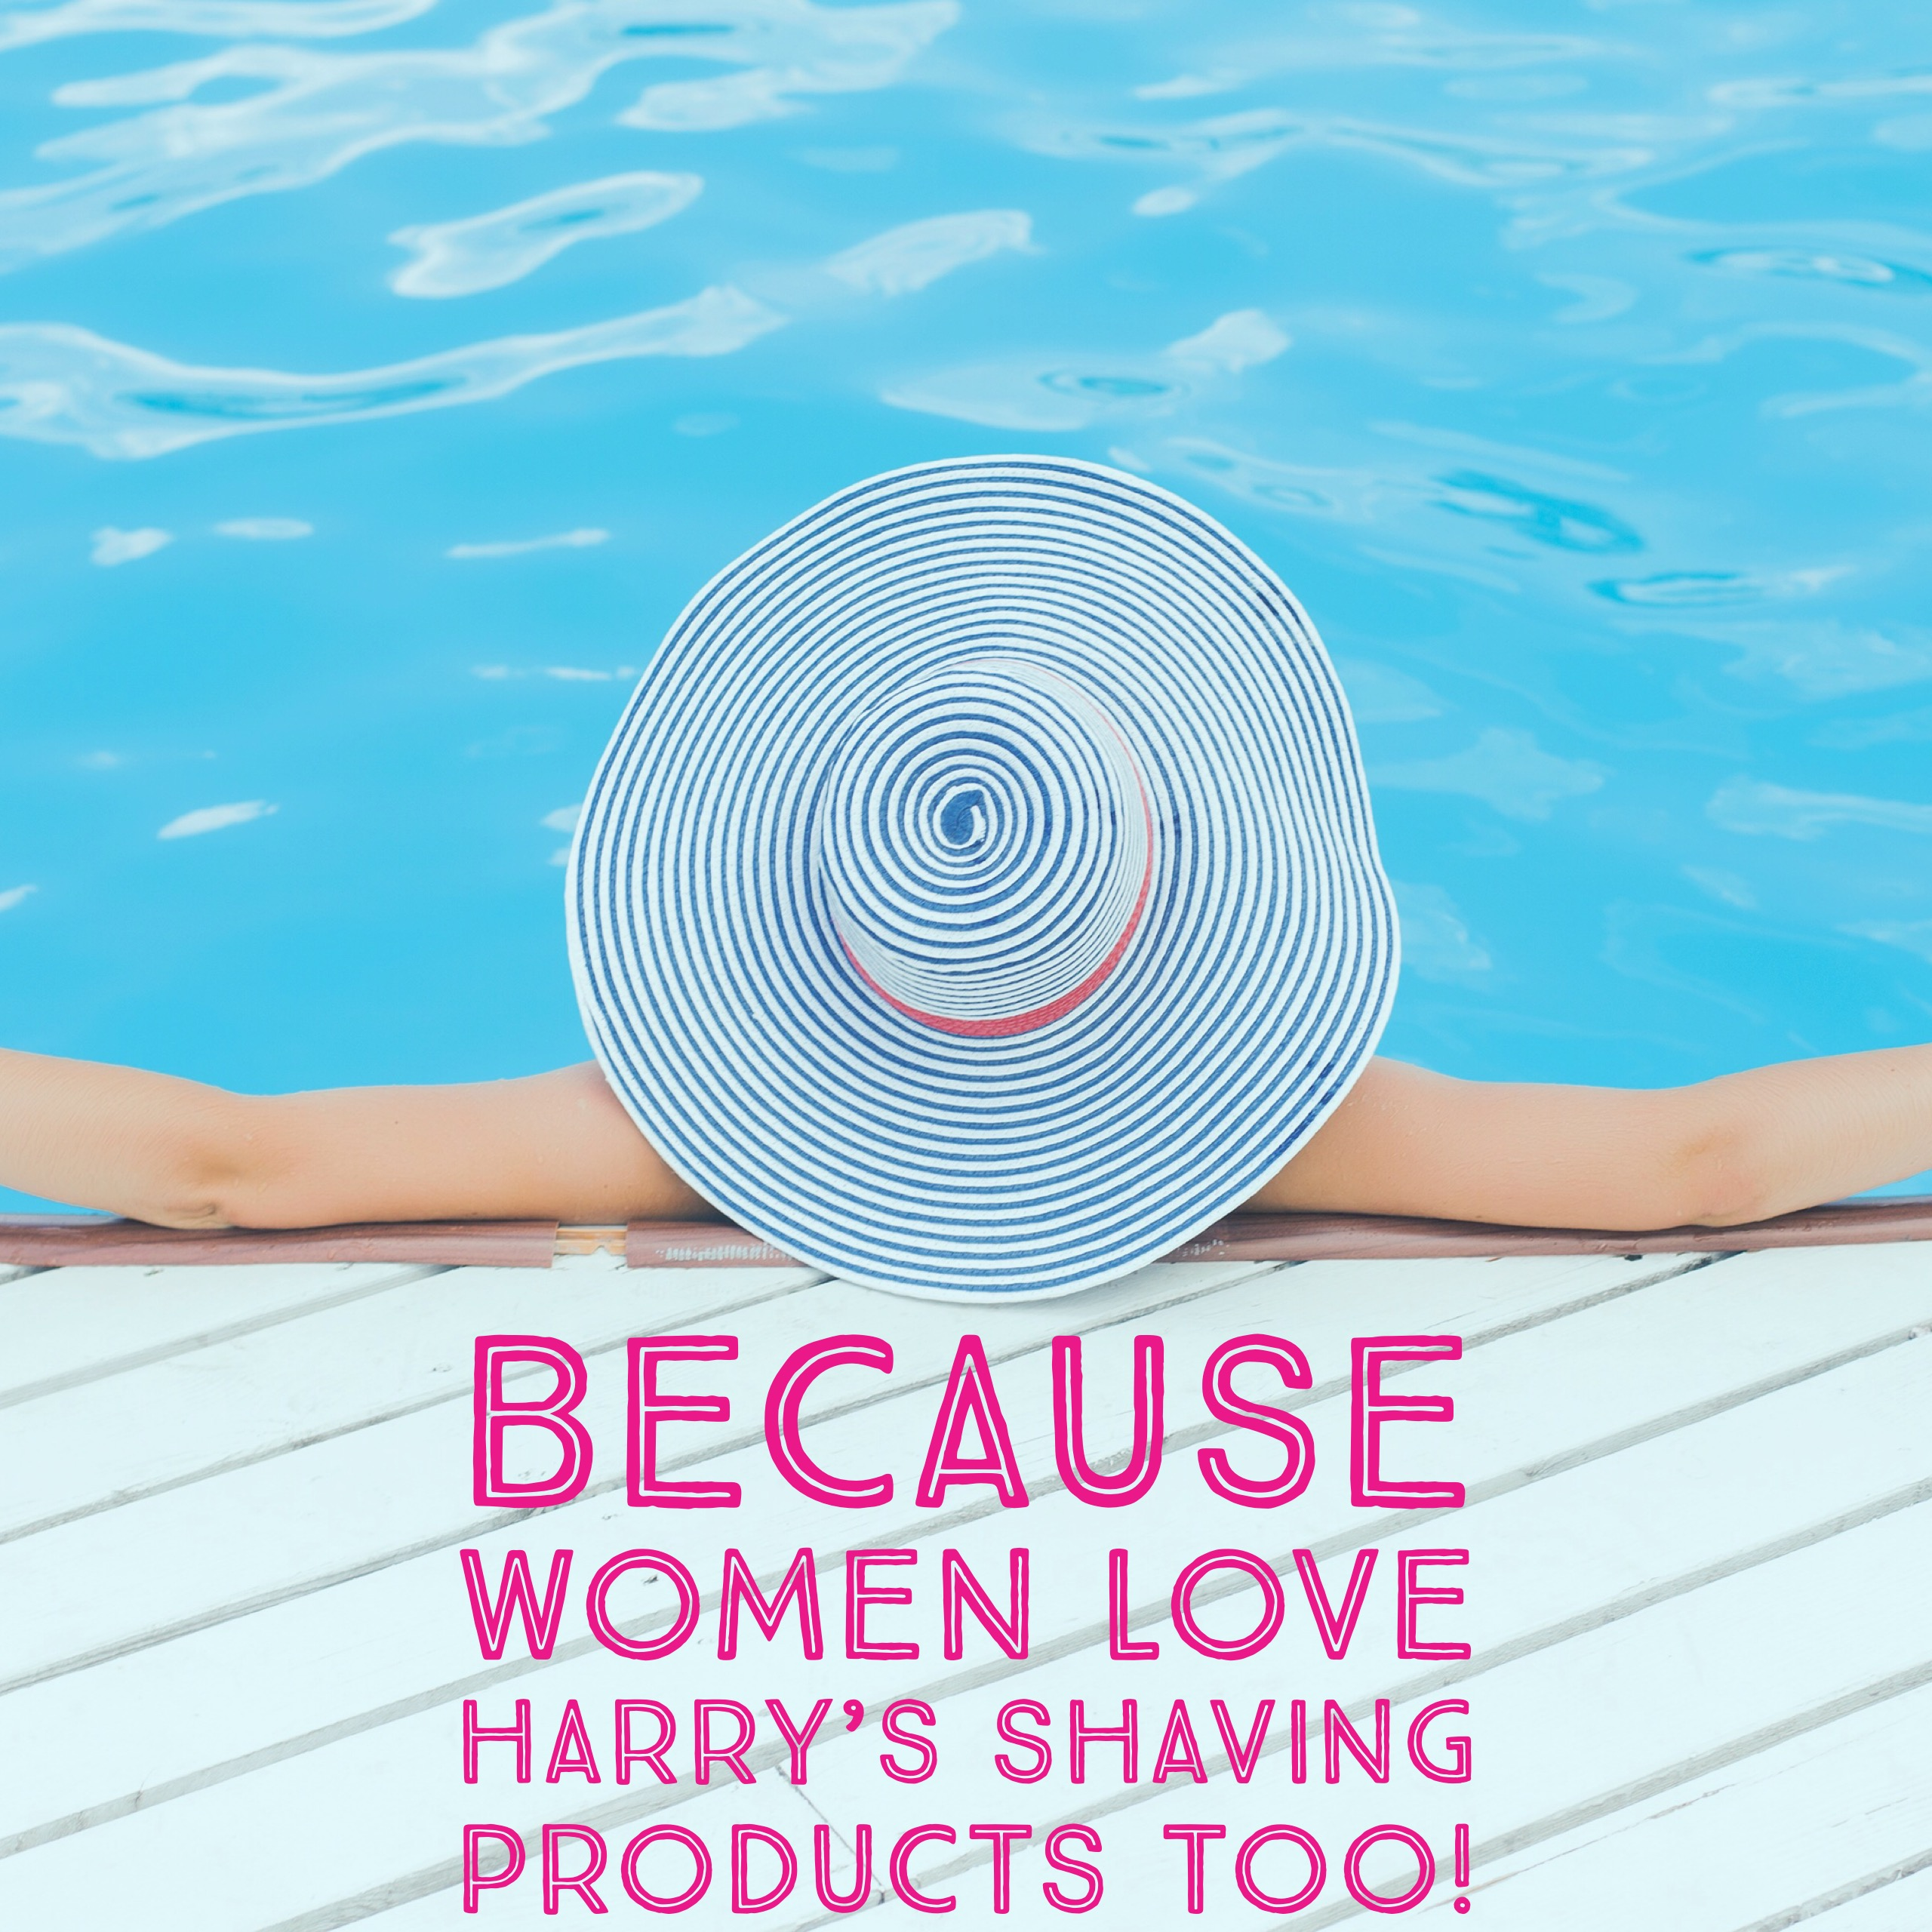 Because Women Love Harry's Shaving Products Too